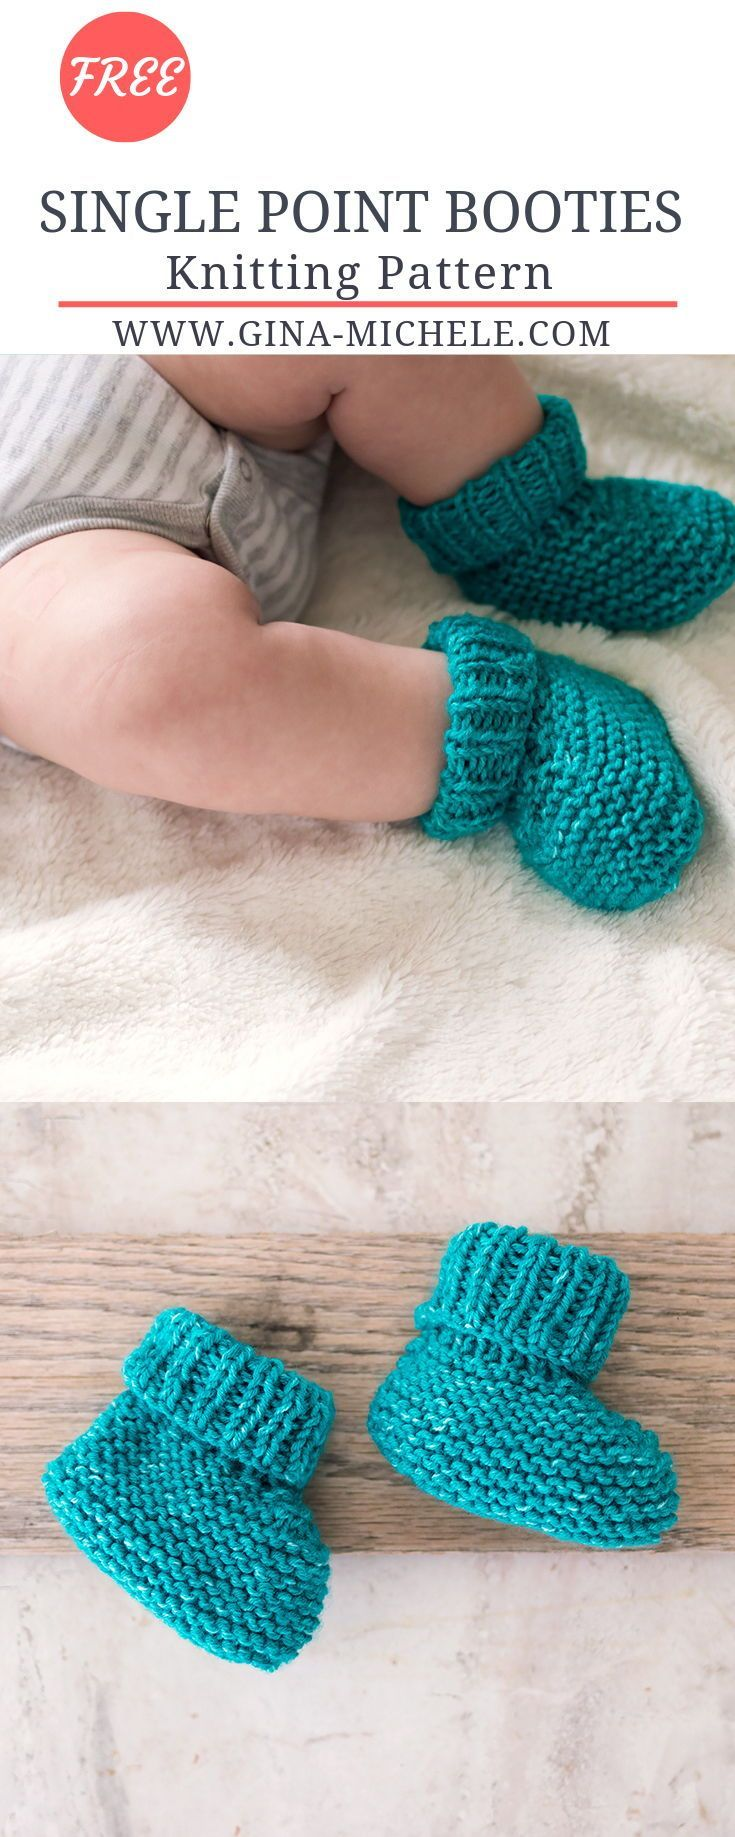 Photo of FREE knitting pattern for these Single Point Baby Booties. Great for beginners!